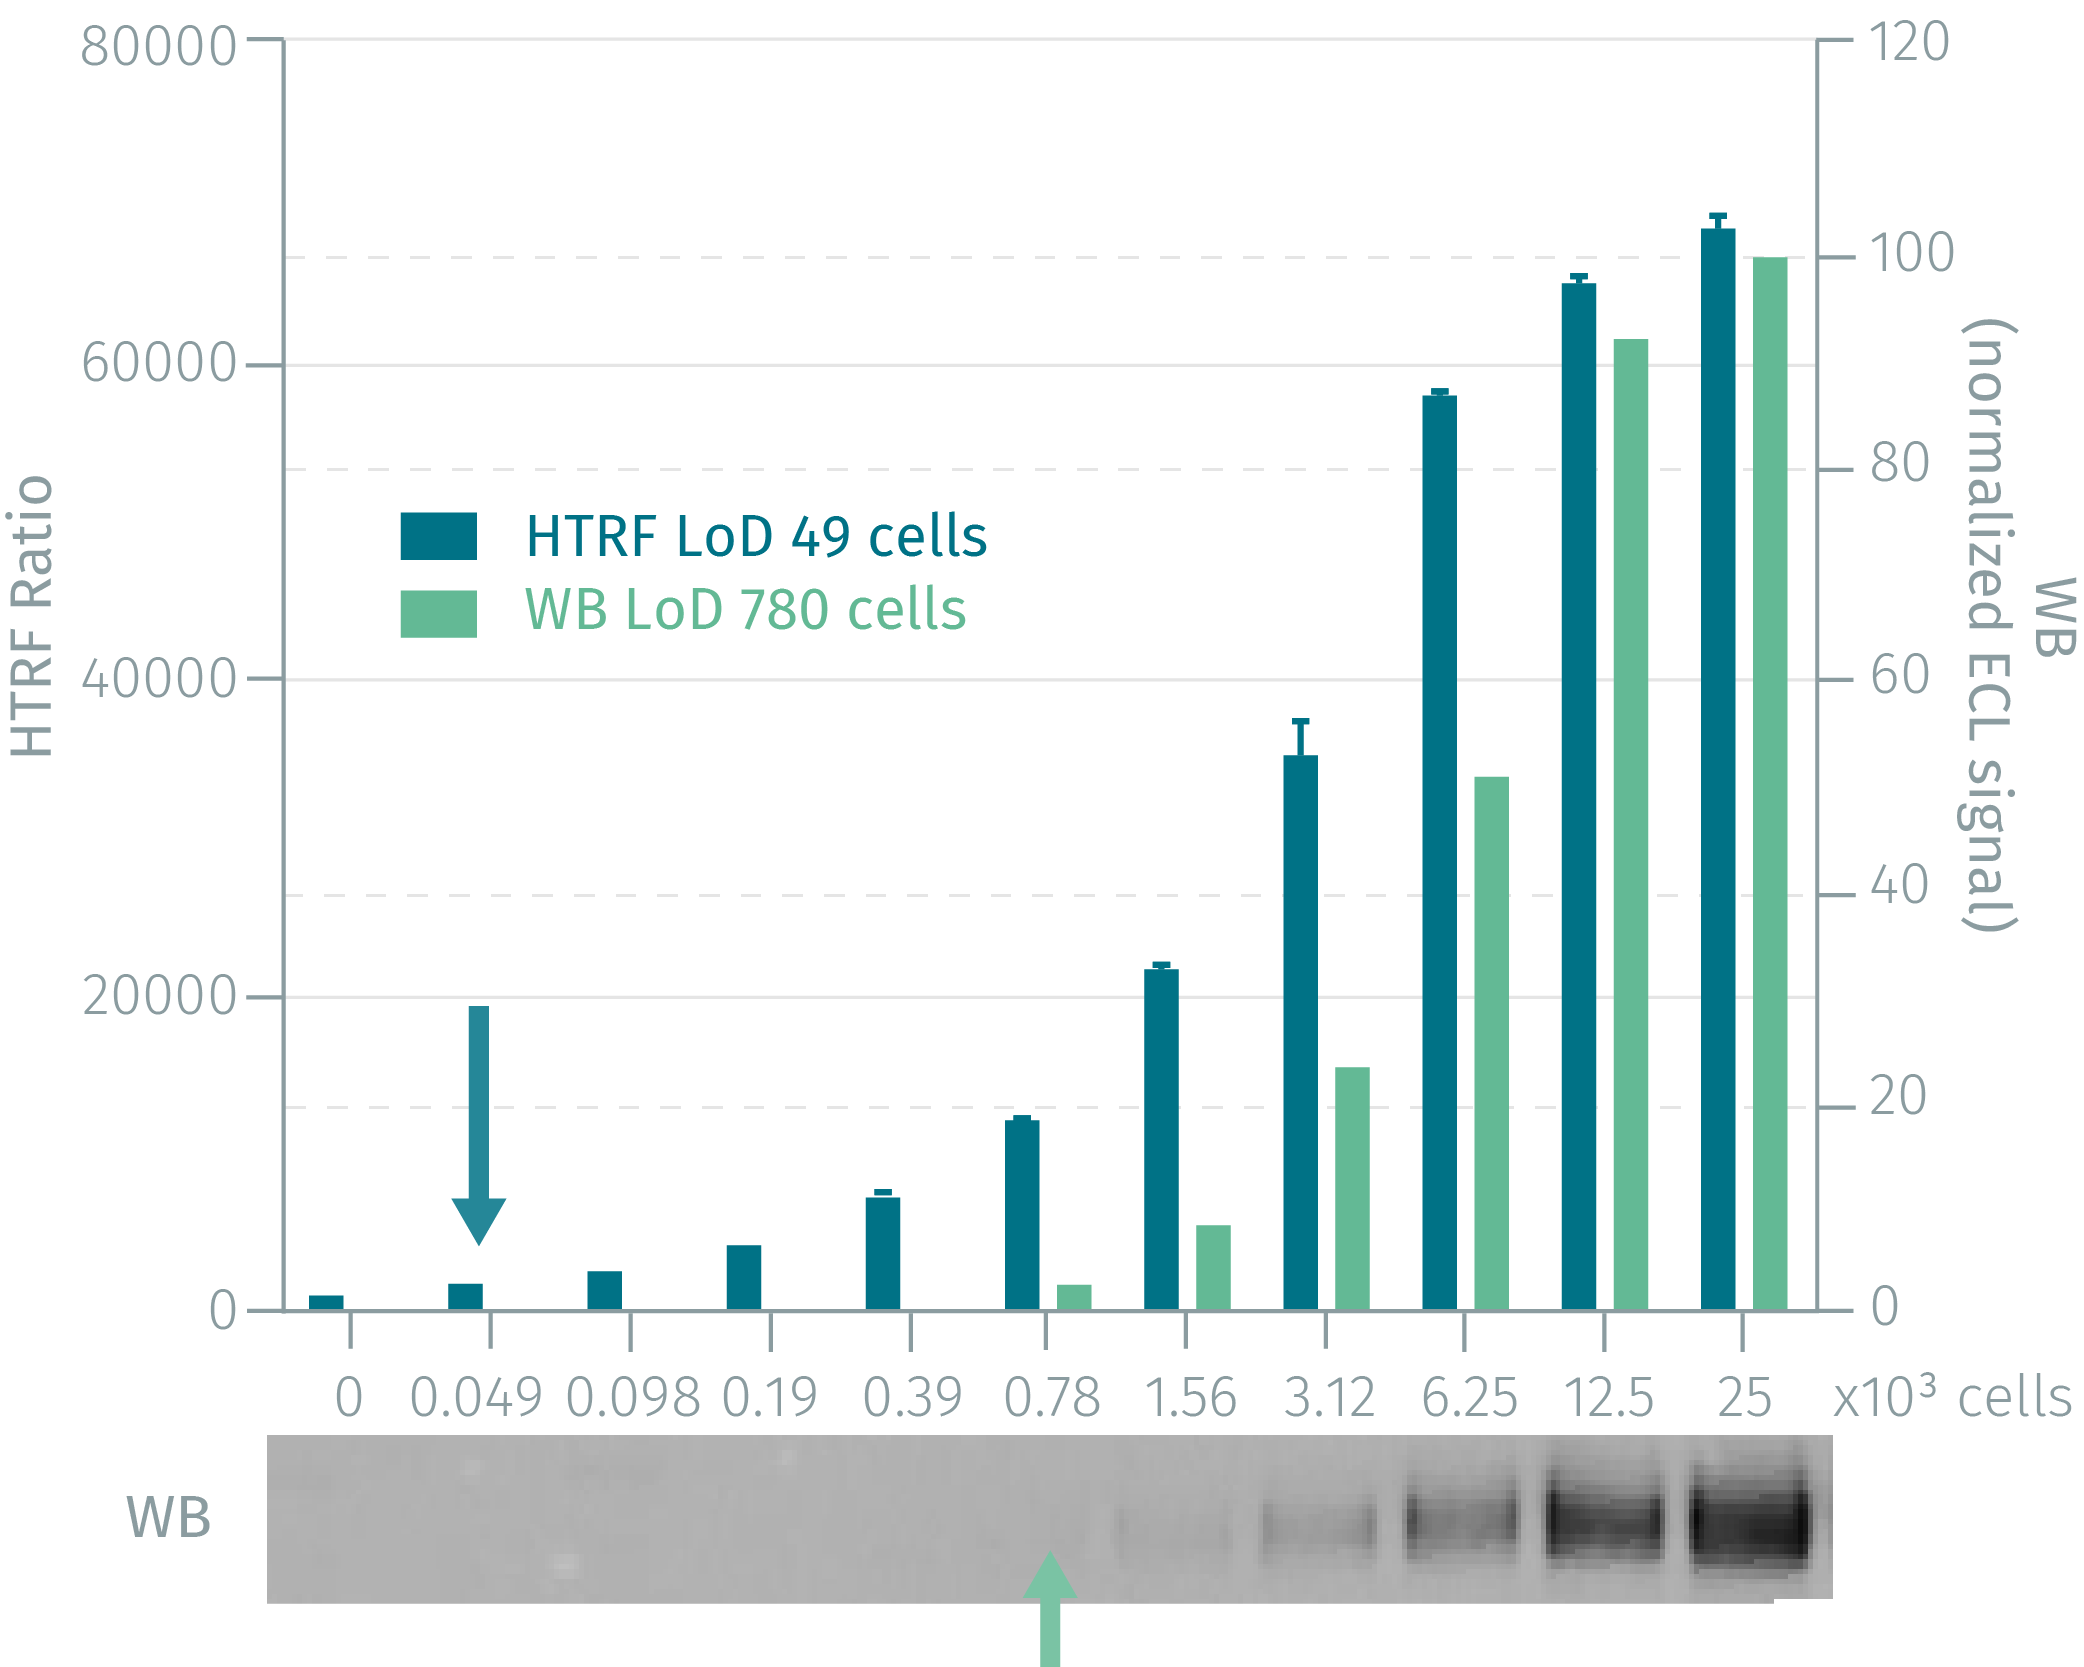 HTRF total EGFR assay compared to Western Blot